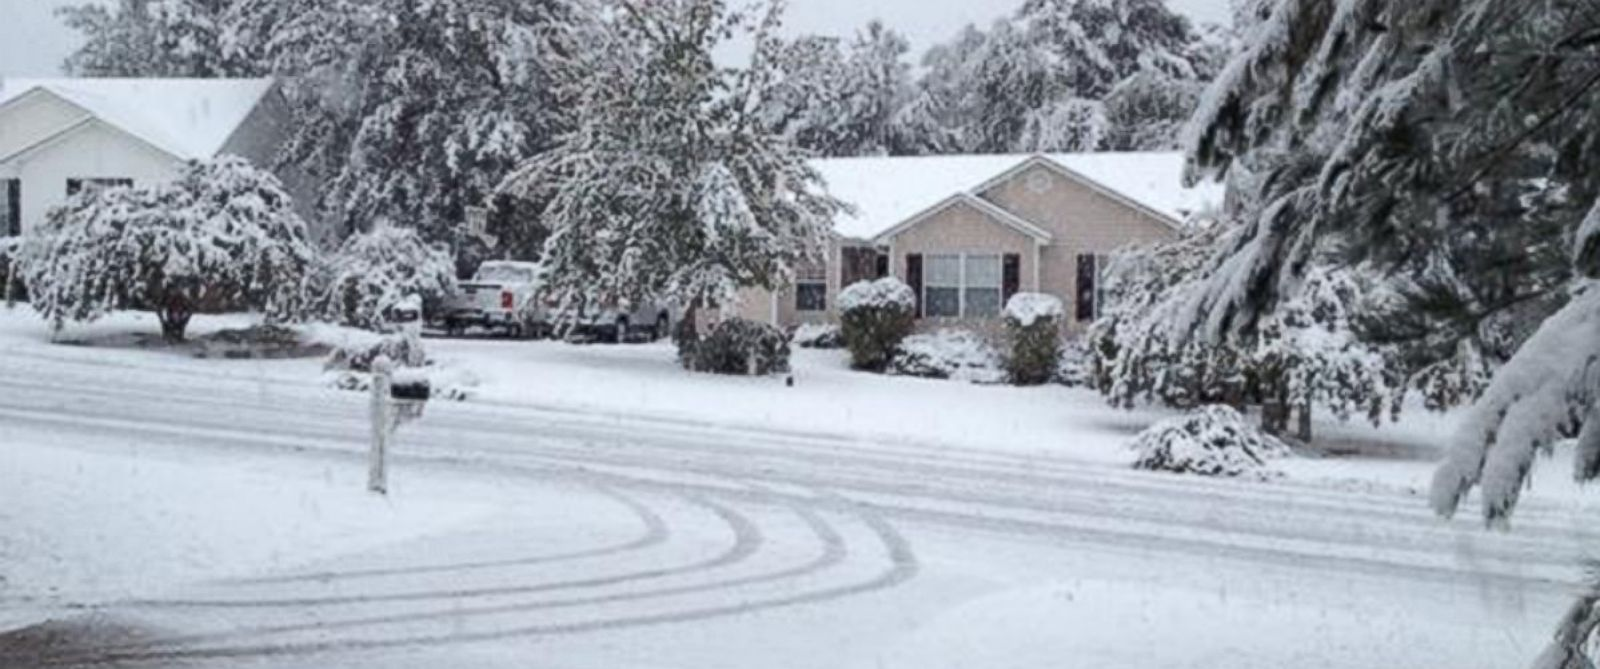 PHOTO: Snow covering the ground in Lexington, South Carolina on the first day of November.